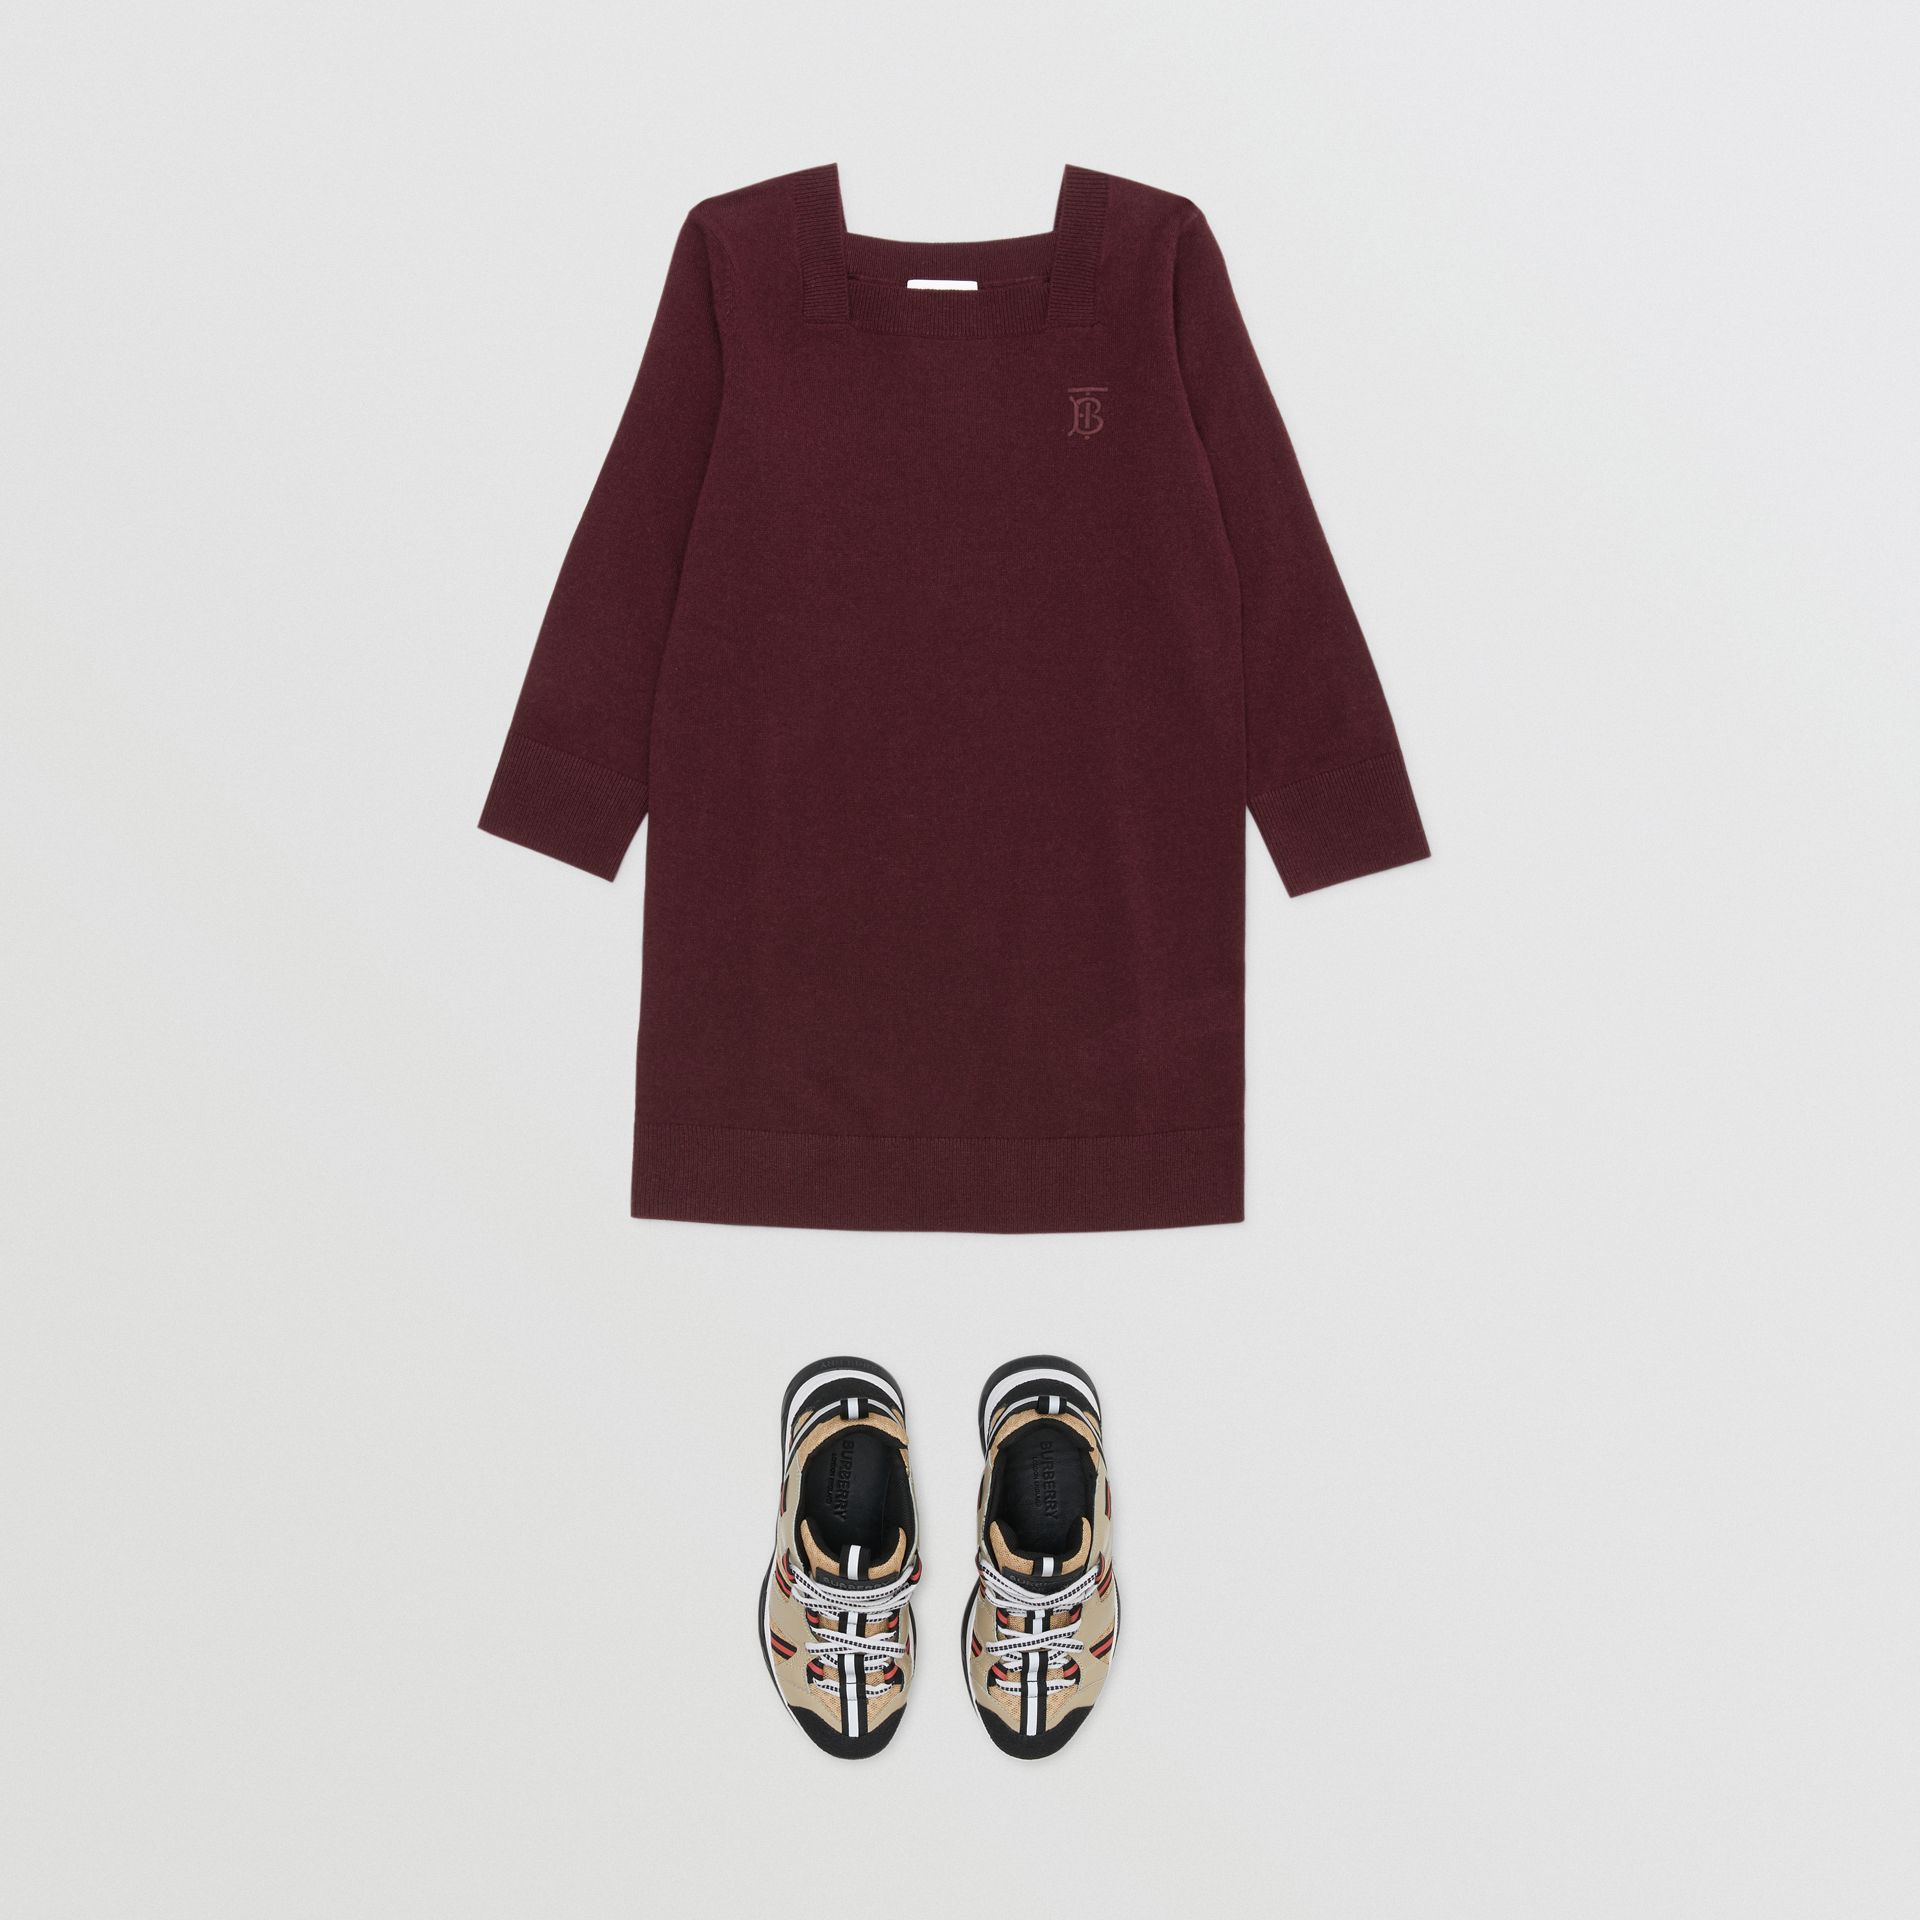 Monogram Motif Cashmere Sweater Dress in Burgundy | Burberry United Kingdom - gallery image 2